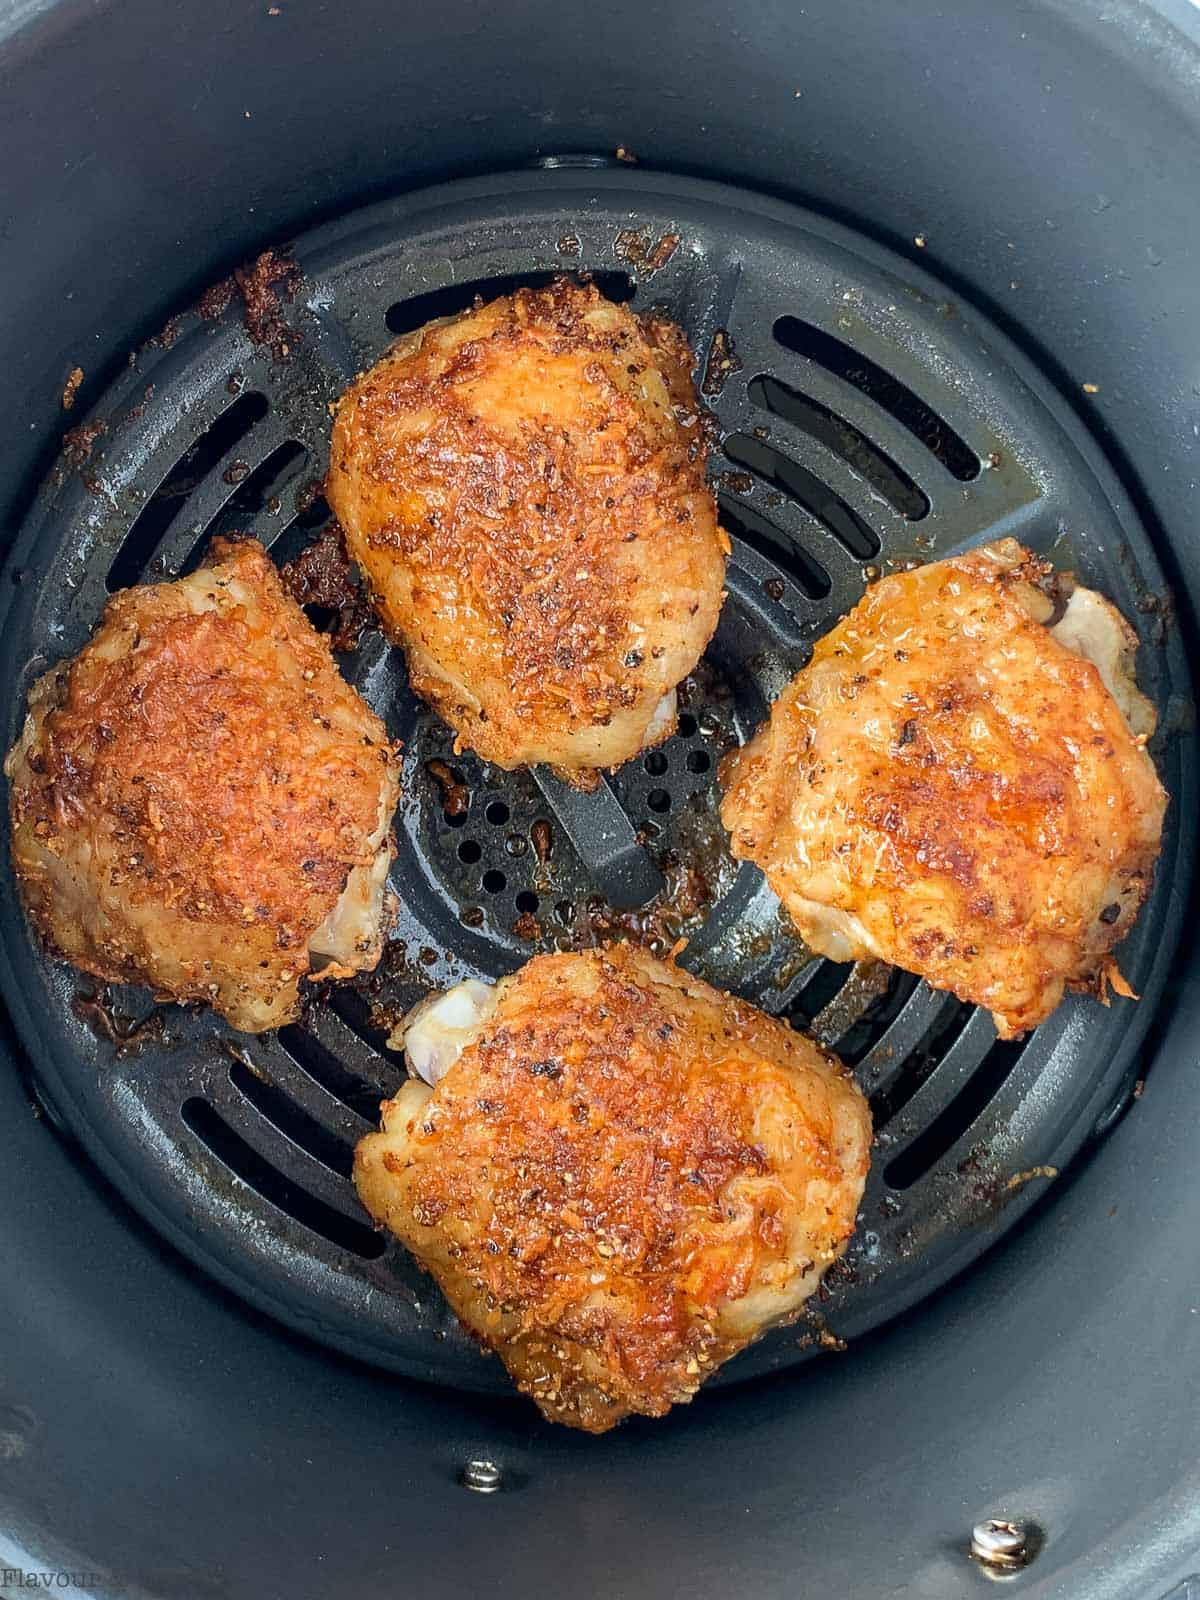 Four cooked chicken thighs in air fryer basket